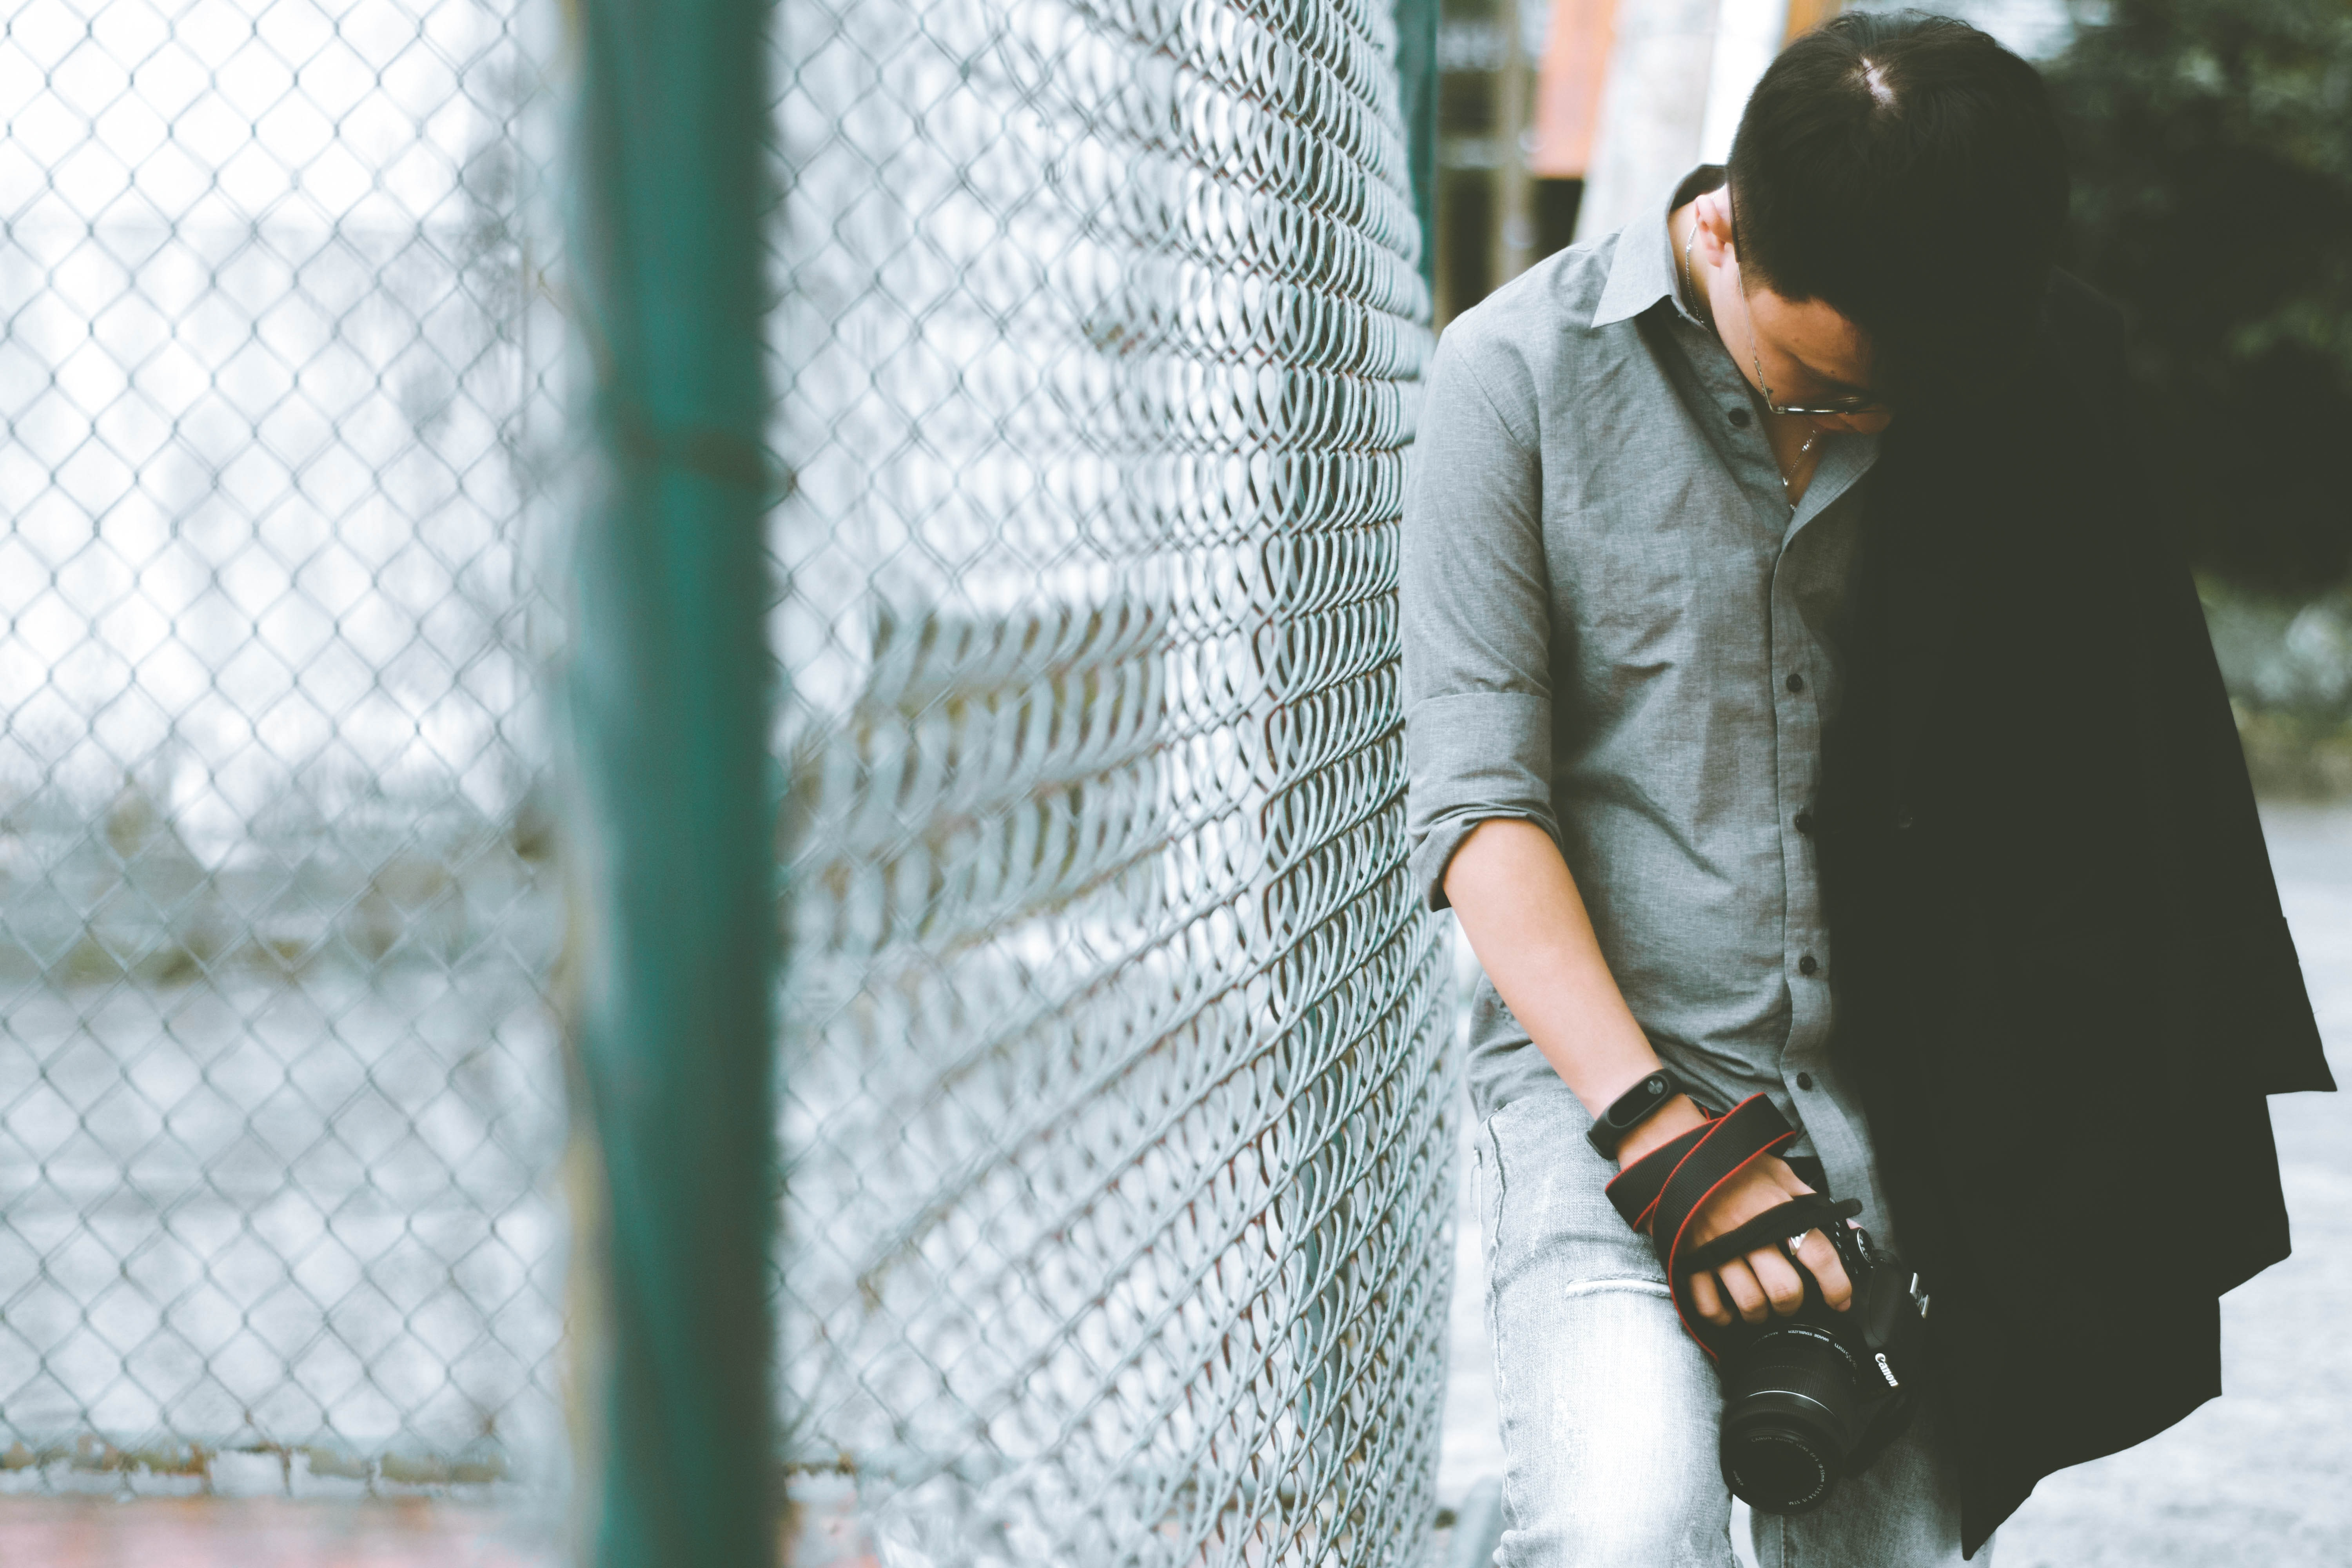 man leaning on cyclone fence while holding DSLR camera